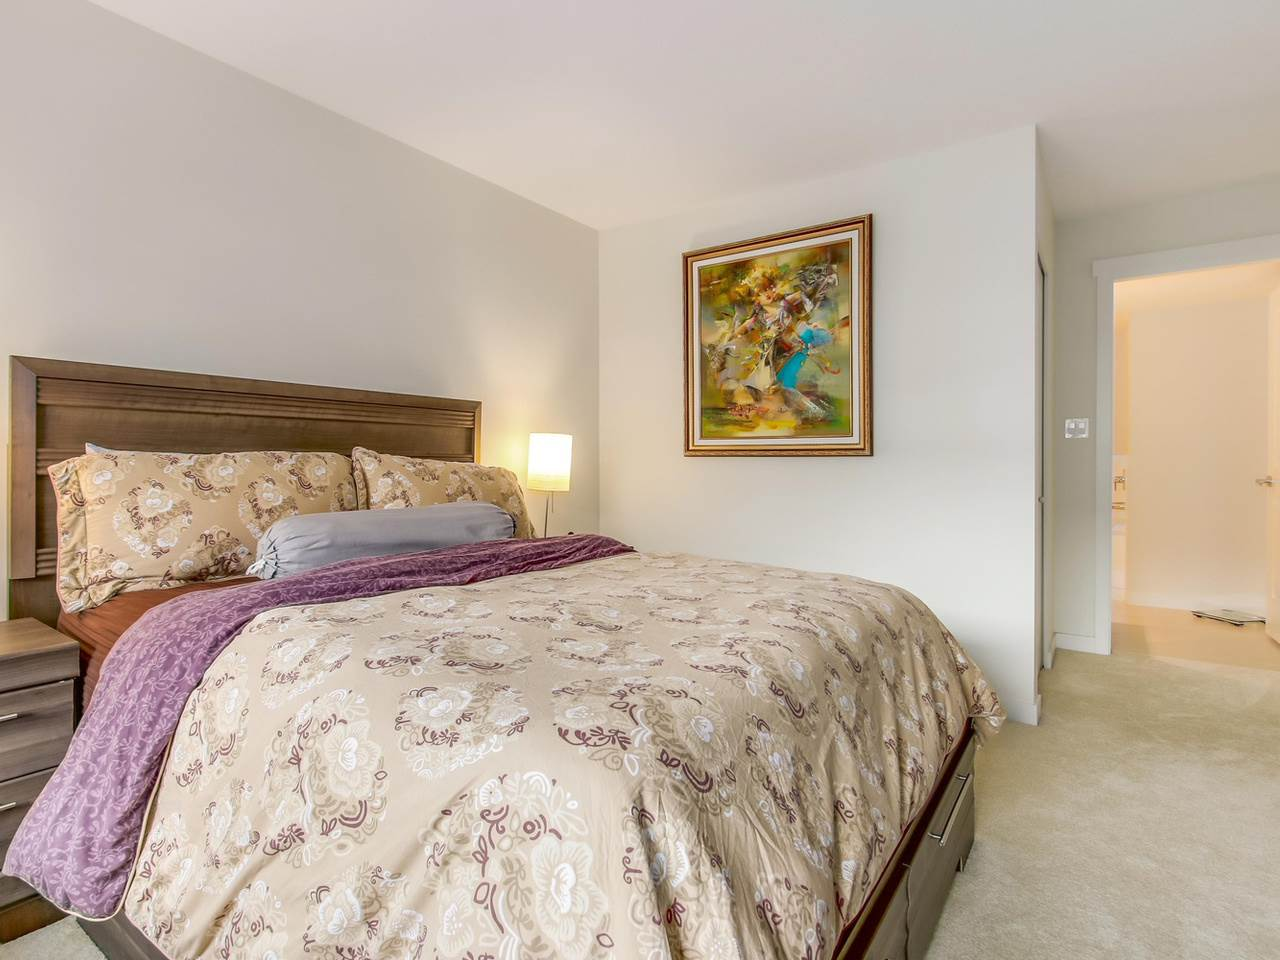 Photo 10: 313 3133 RIVERWALK Avenue in Vancouver: Champlain Heights Condo for sale (Vancouver East)  : MLS(r) # R2121189